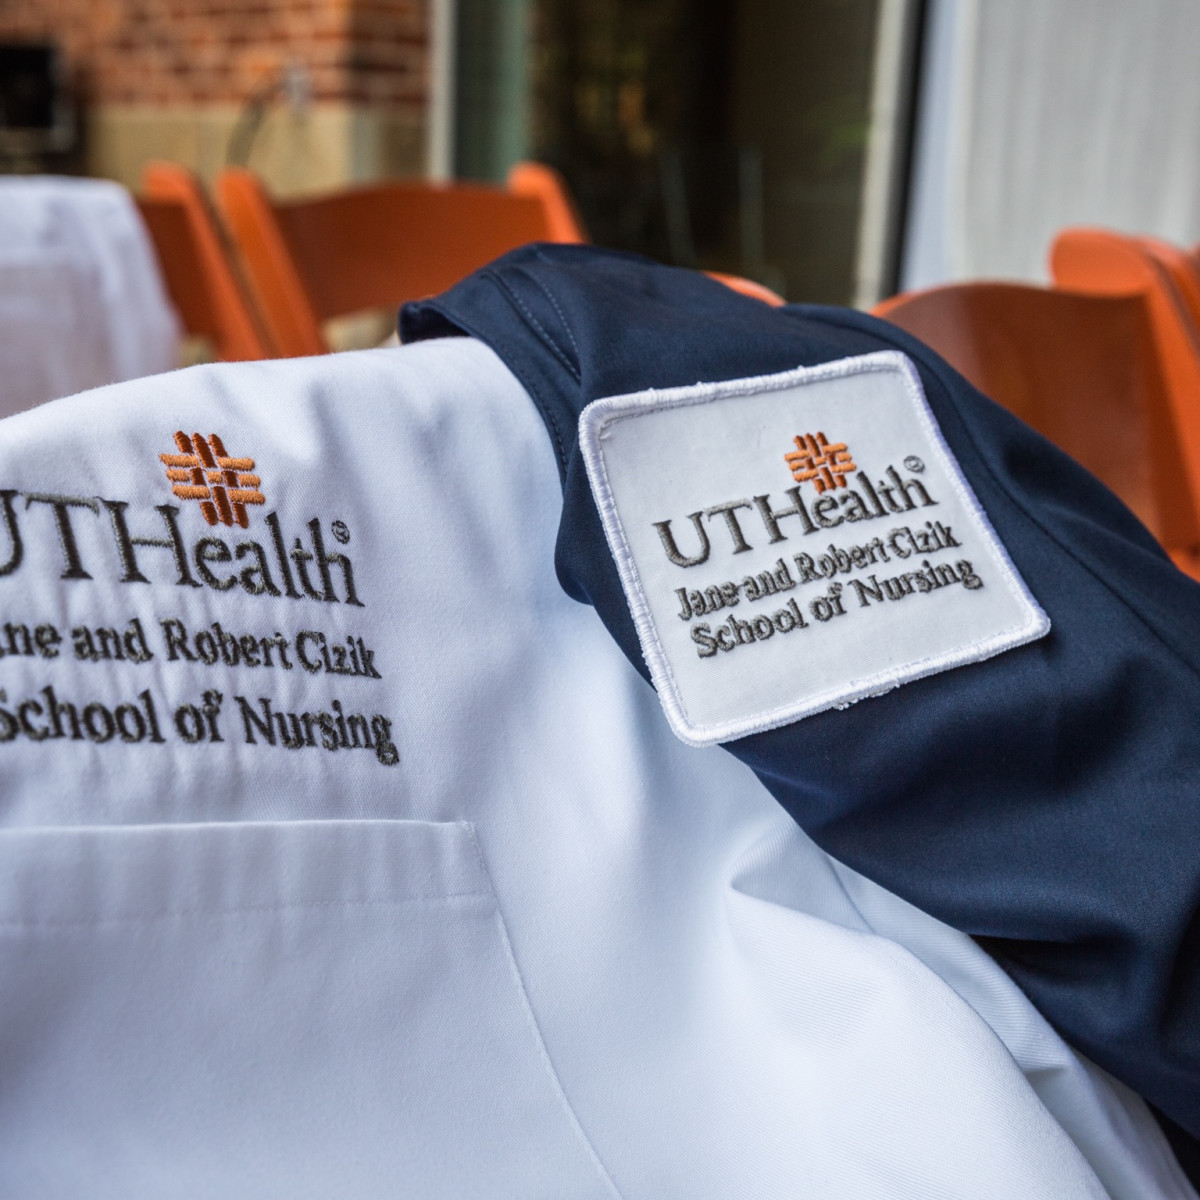 New logo for Cizik School of Nursing at UTHealth